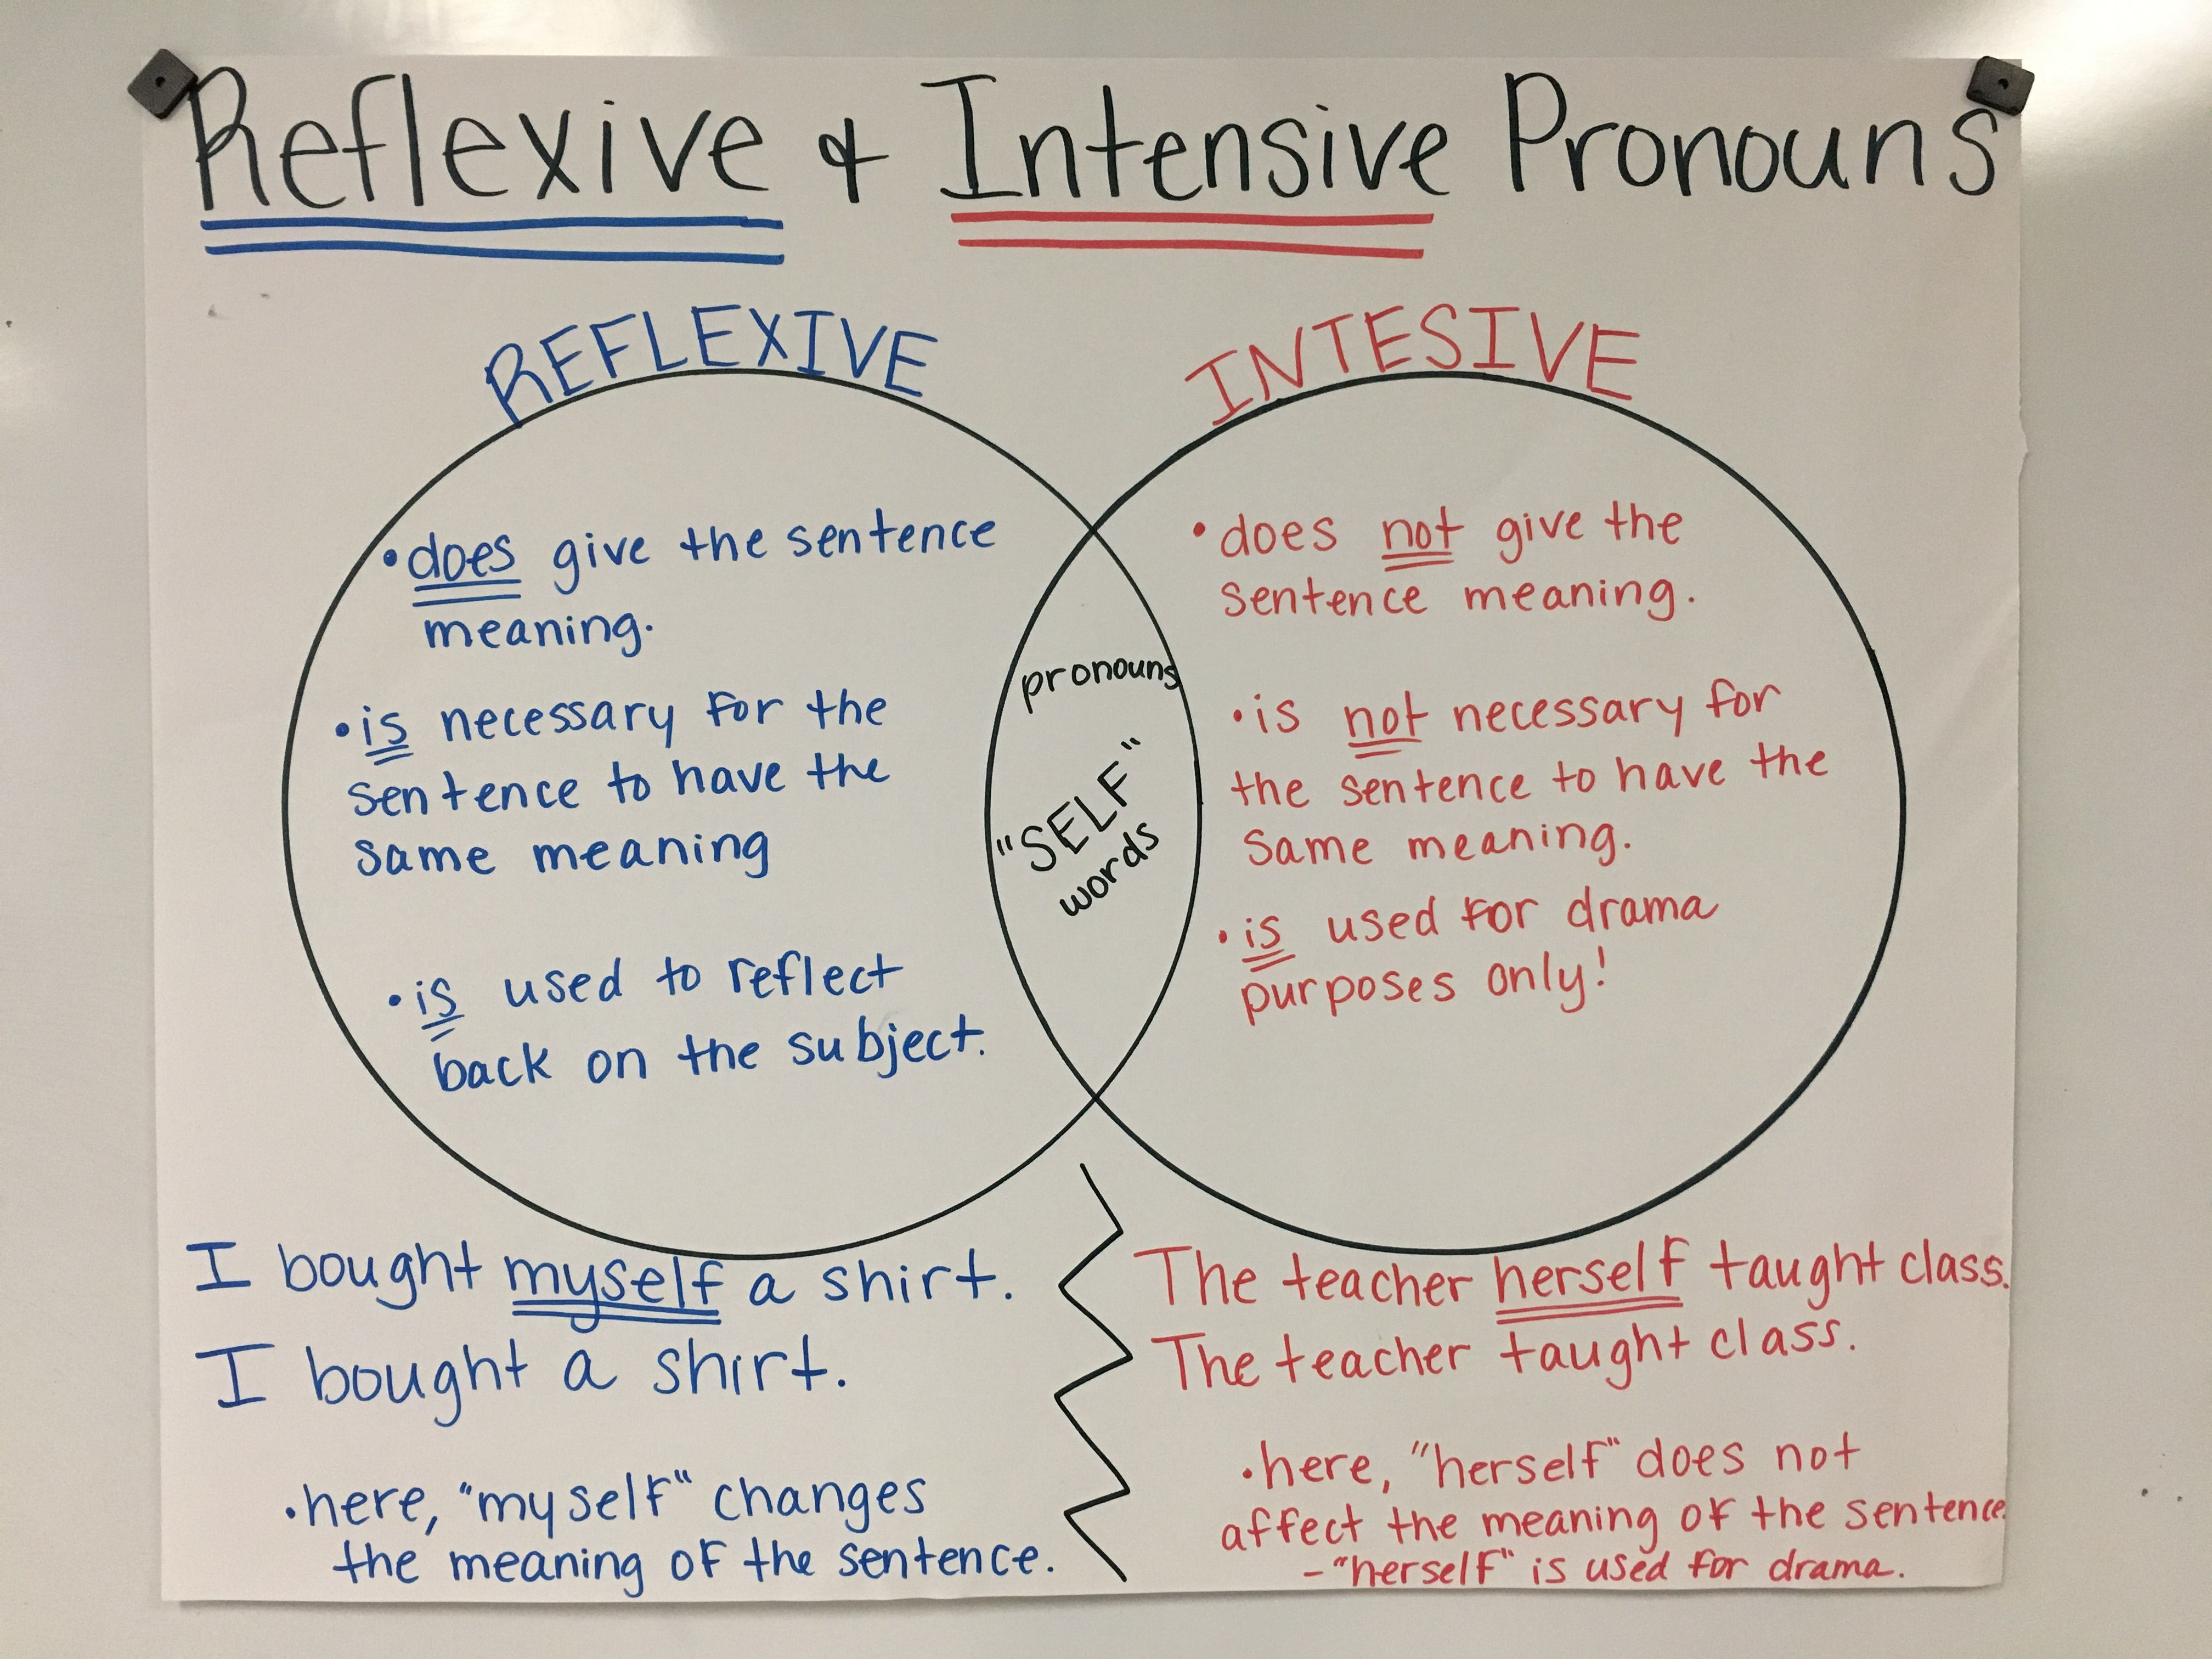 Intensive Vs Reflexive Pronouns